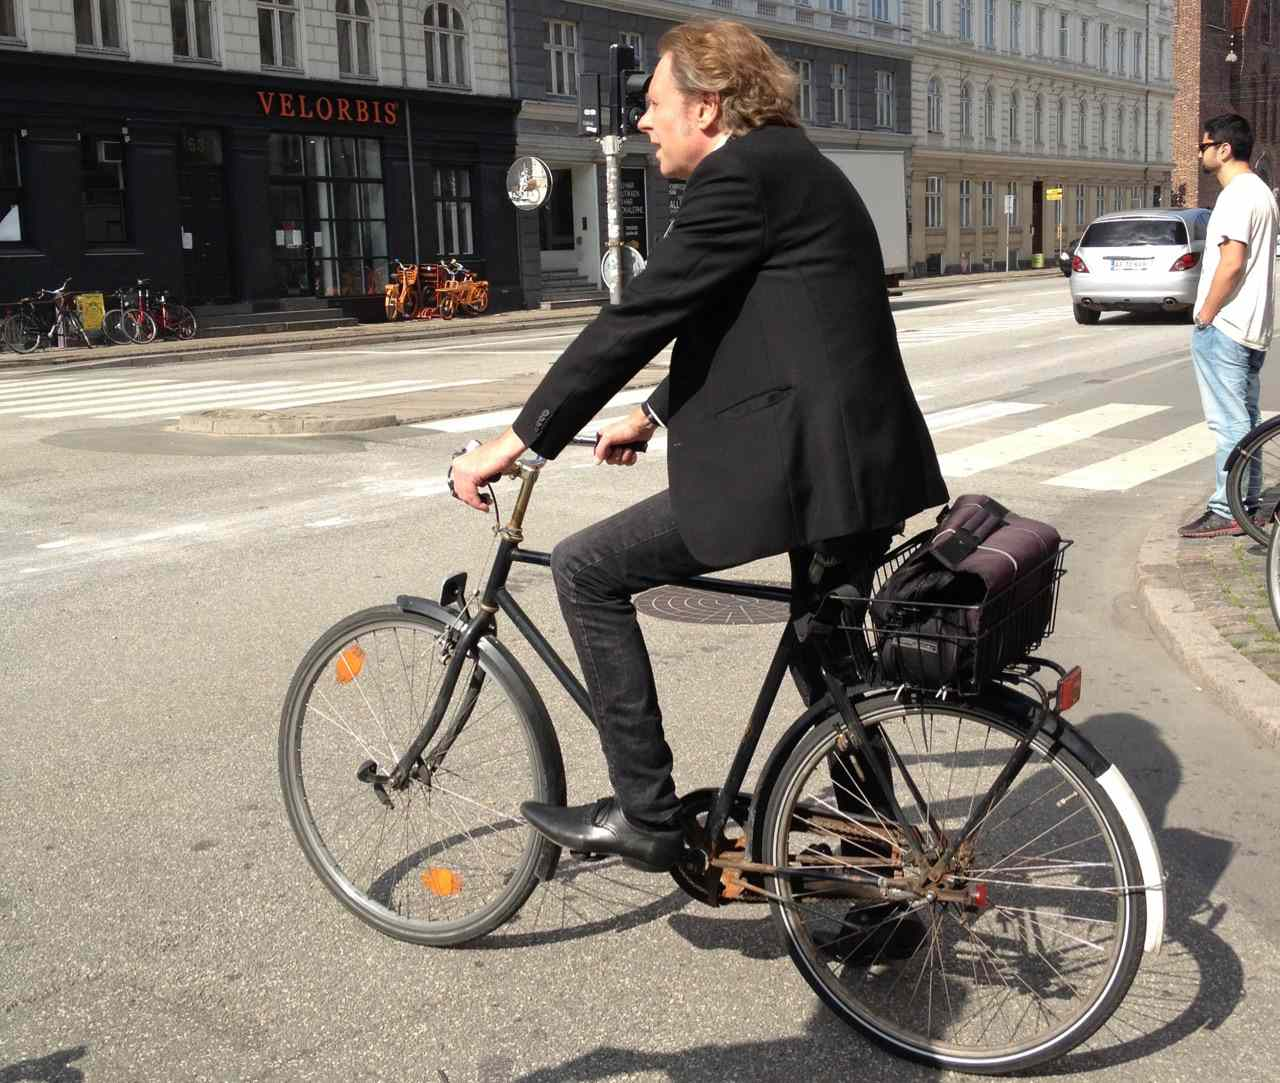 A man in a suit riding a bike on a city street